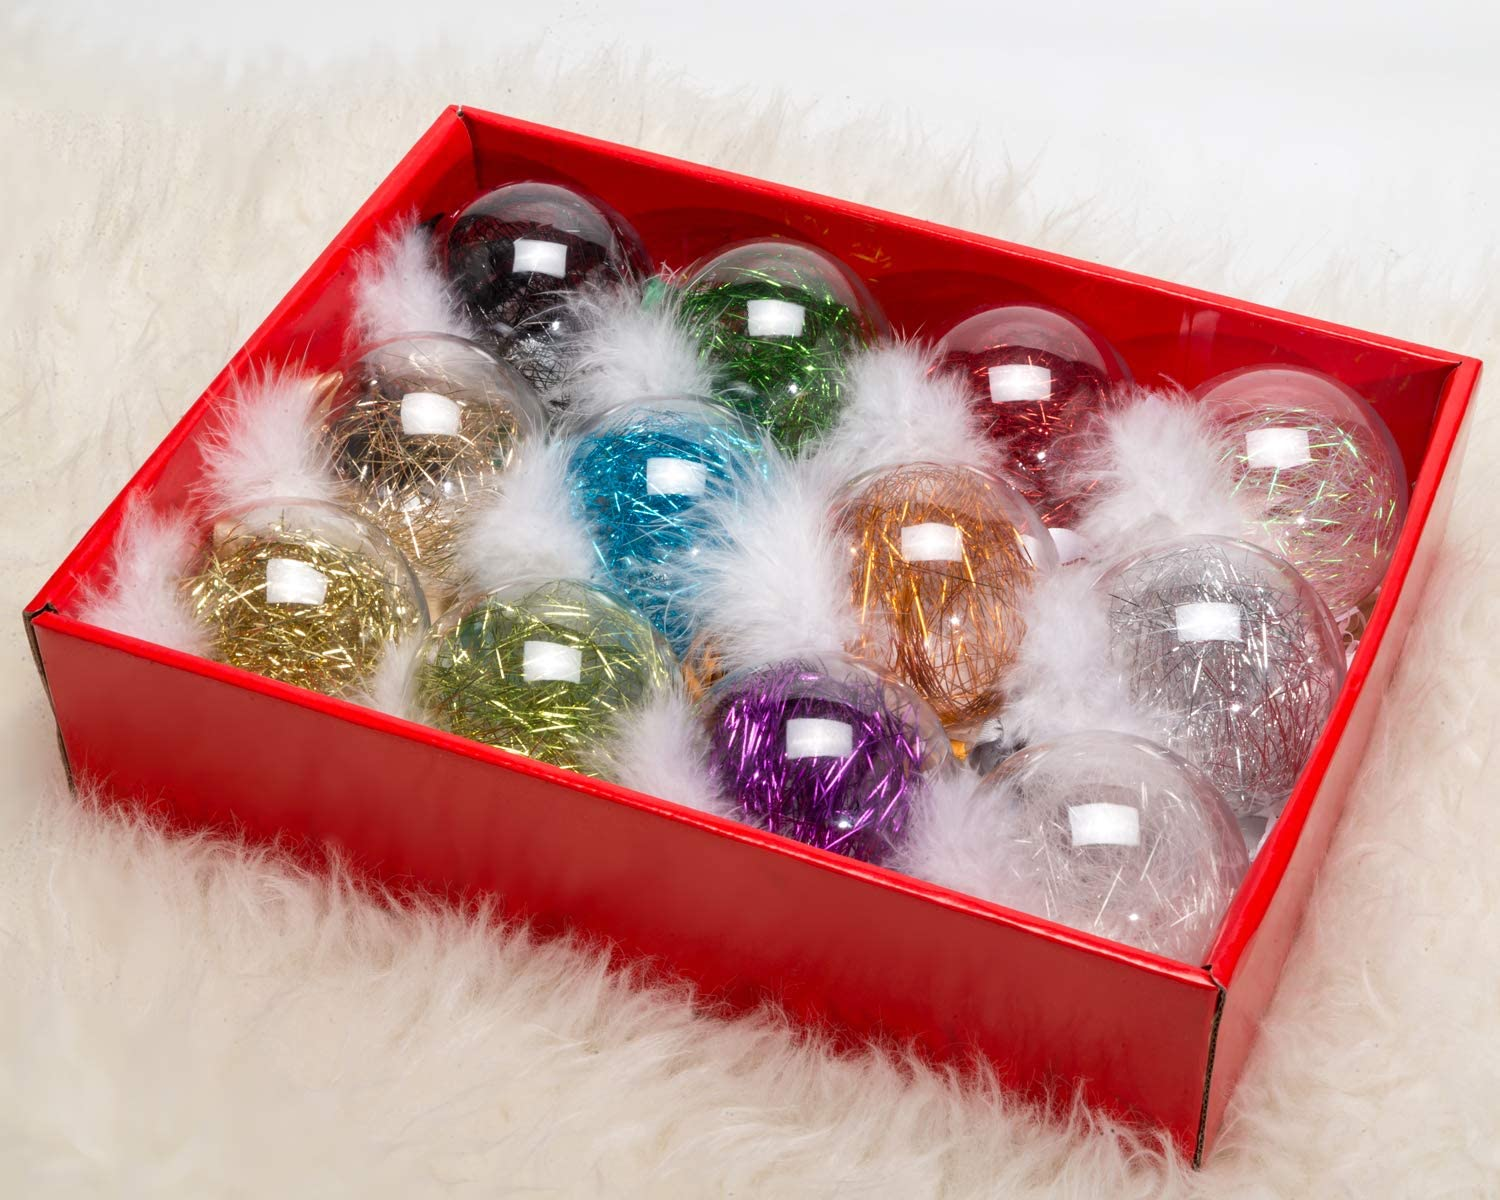 Amazon Com Ams 3 14 12ct Shatterproof Clear Plastic Christmas Ball Ornaments Decorative Xmas Balls Baubles Set With Stuffed Delicate Decoration 80mm Mix Corlor Home Kitchen